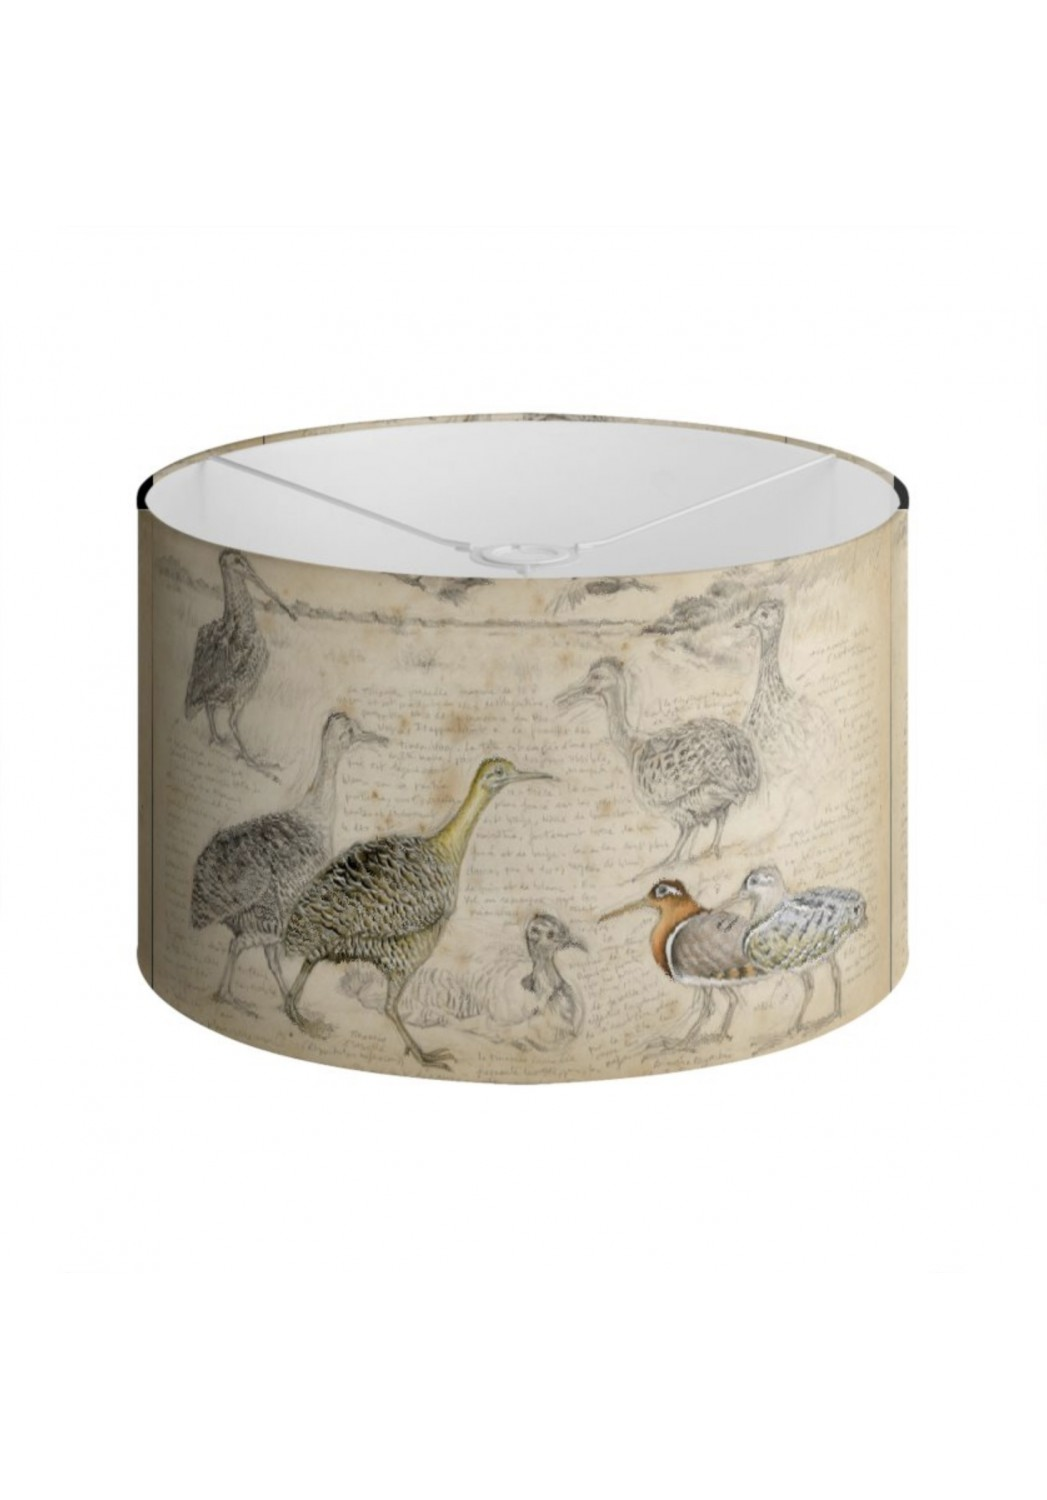 Marcello-art: Decoration accessoiries Lampshade 240 Tinamou & Snipe